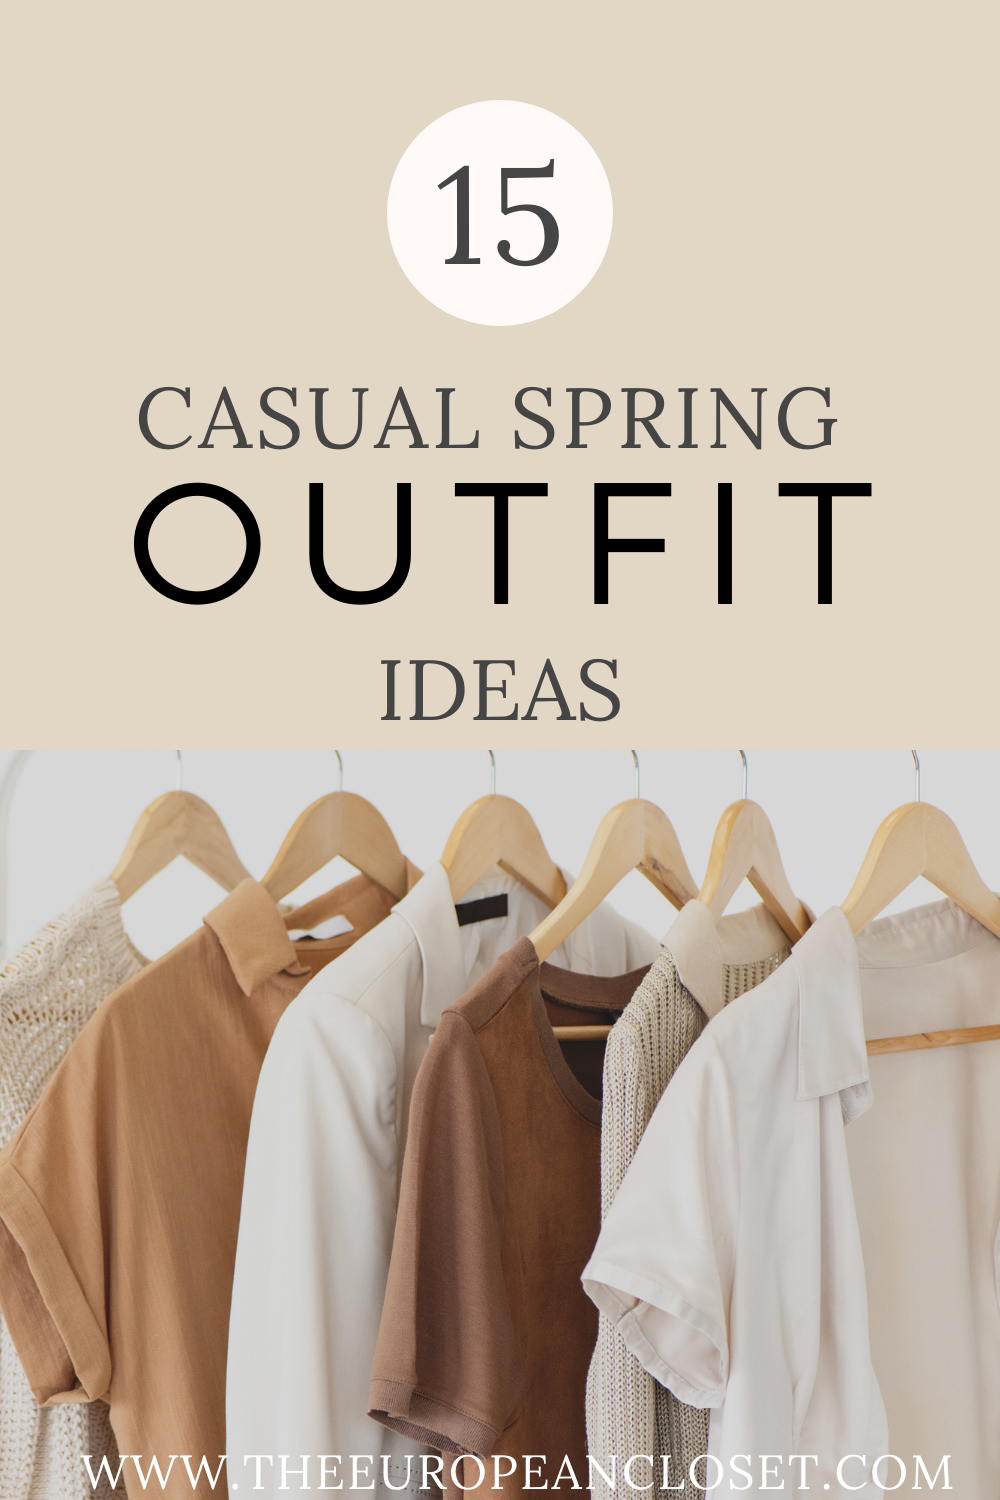 Looking for casual spring outfit ideas? Look no further! Today I've gathered 15 (that's right, fifteen) amazing outfits you can wear today!